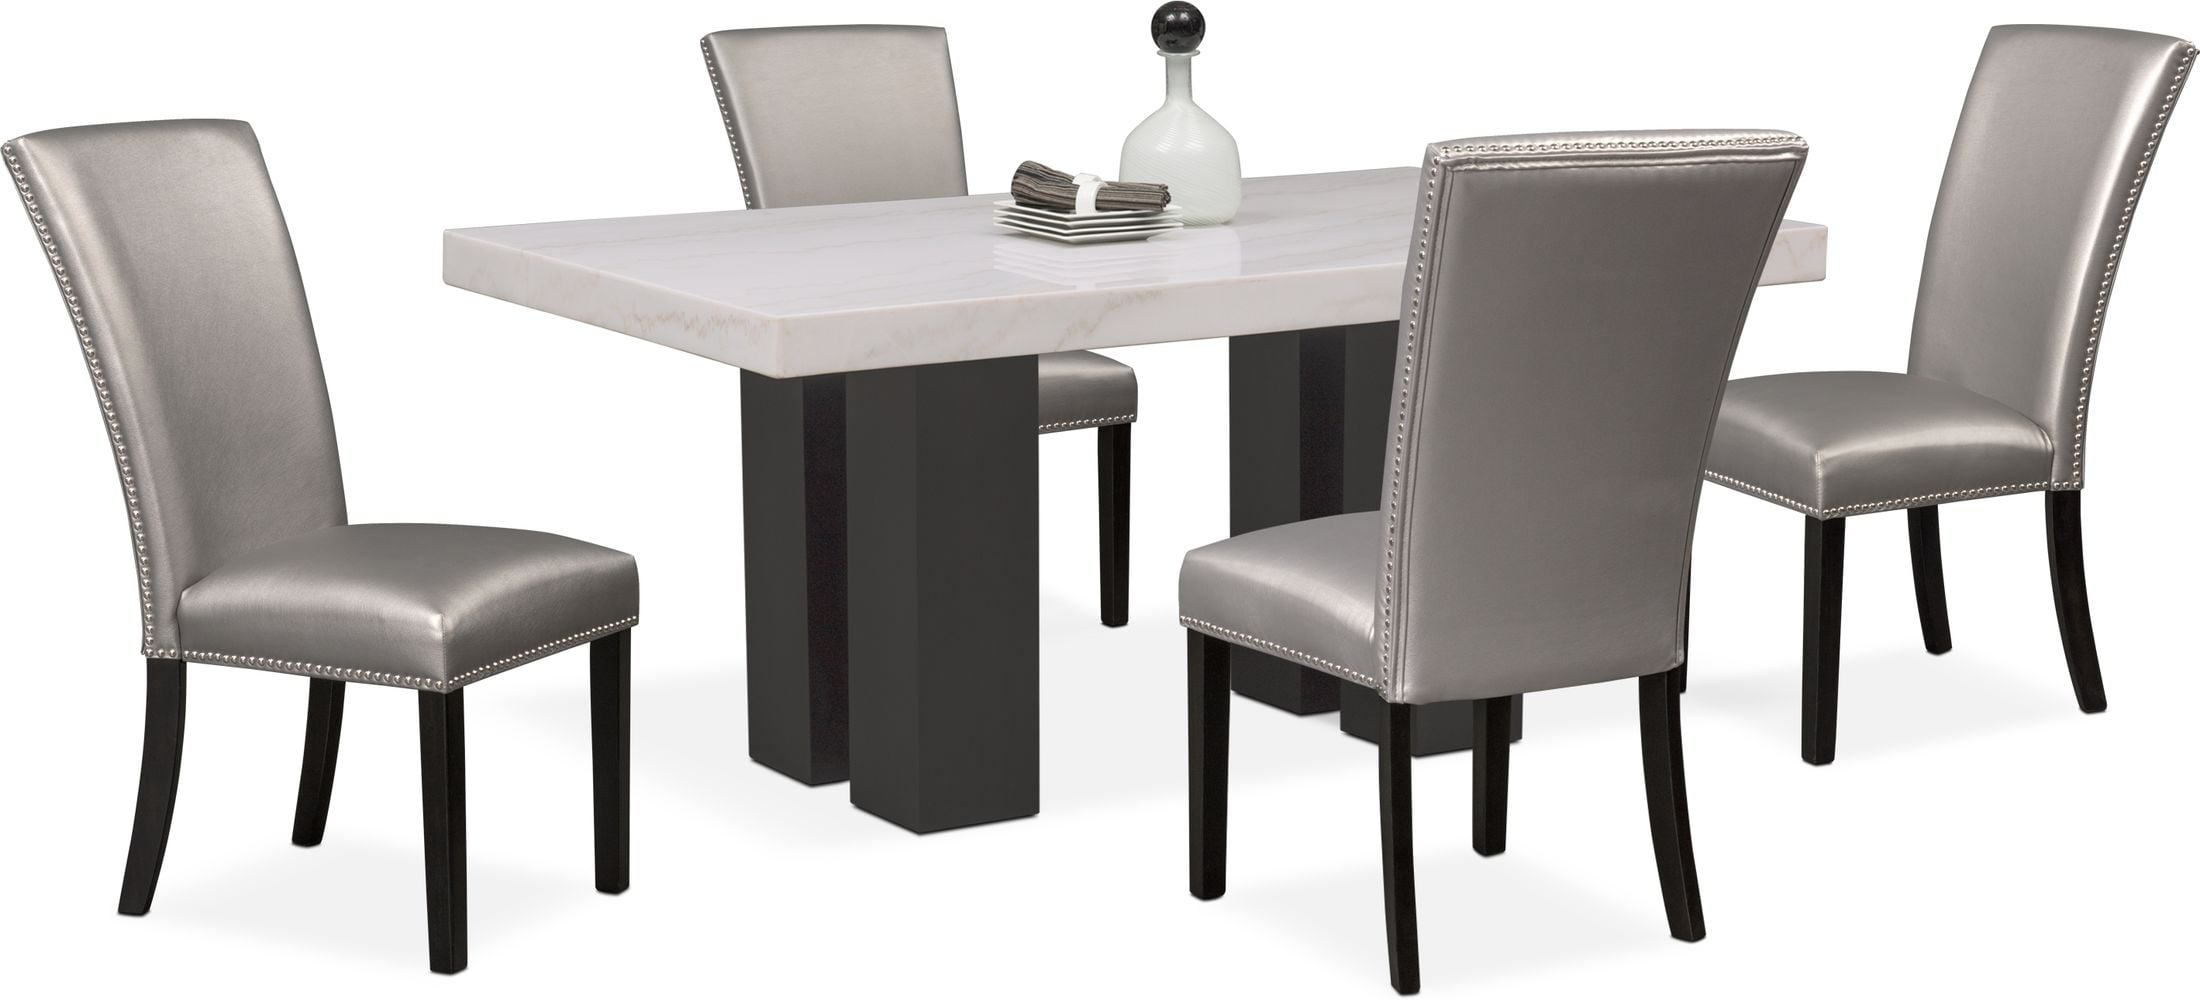 Dining Room Furniture - Artemis Marble Dining Table and 4 Upholstered Dining Chairs